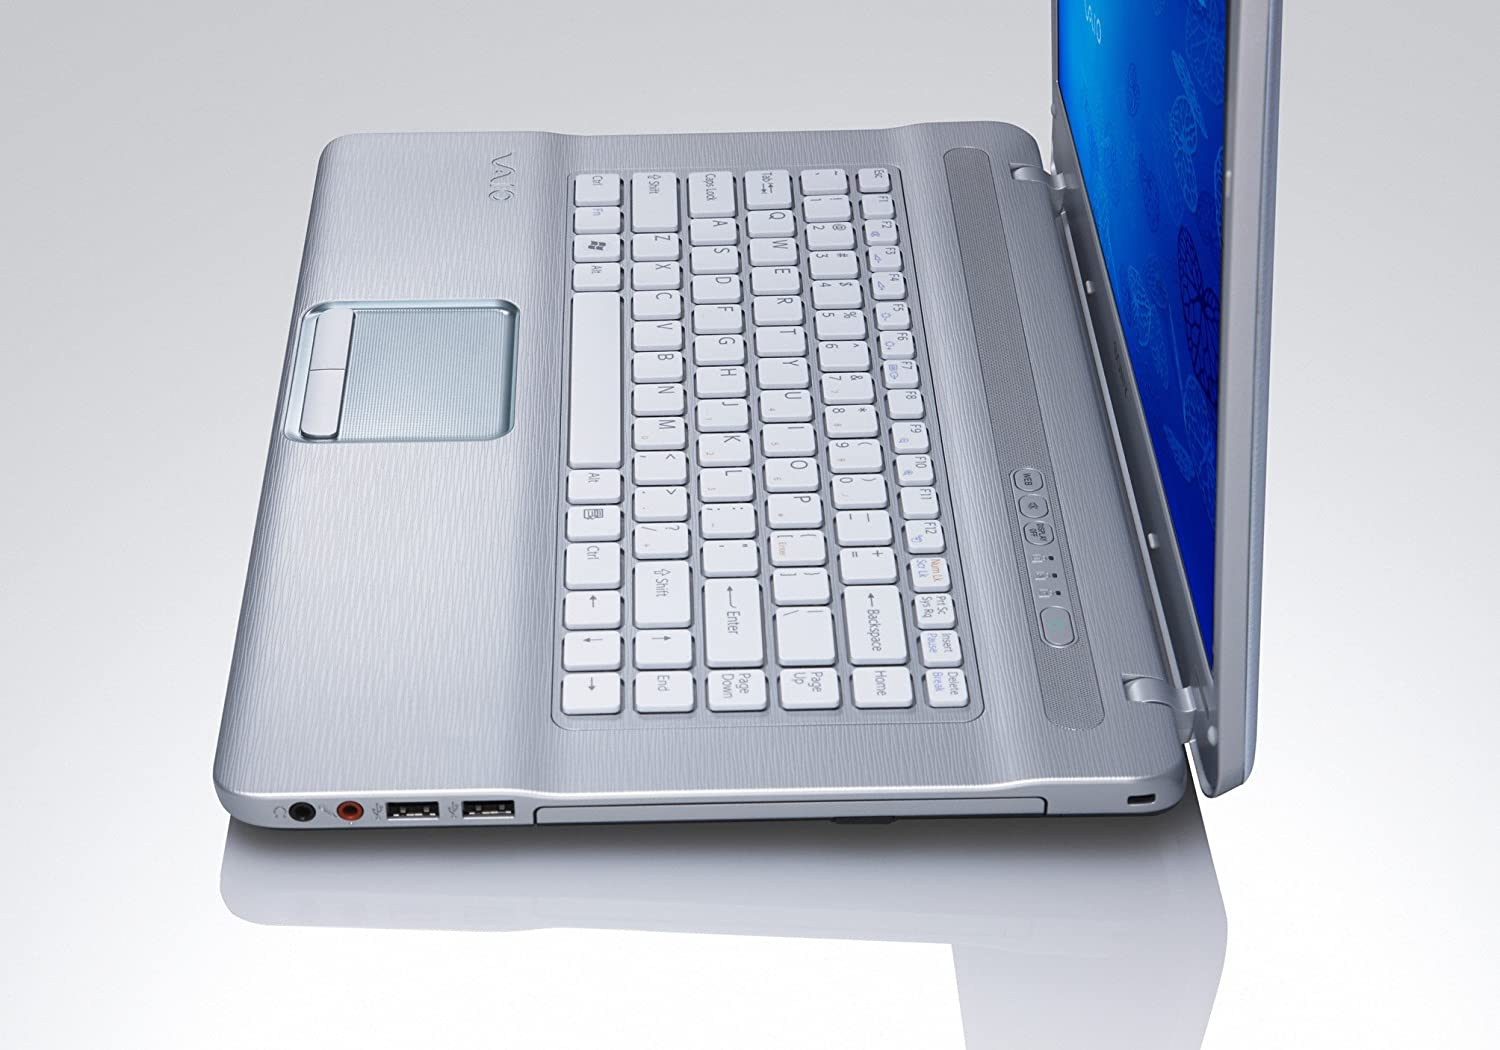 DRIVER FOR SONY VAIO HKSERV